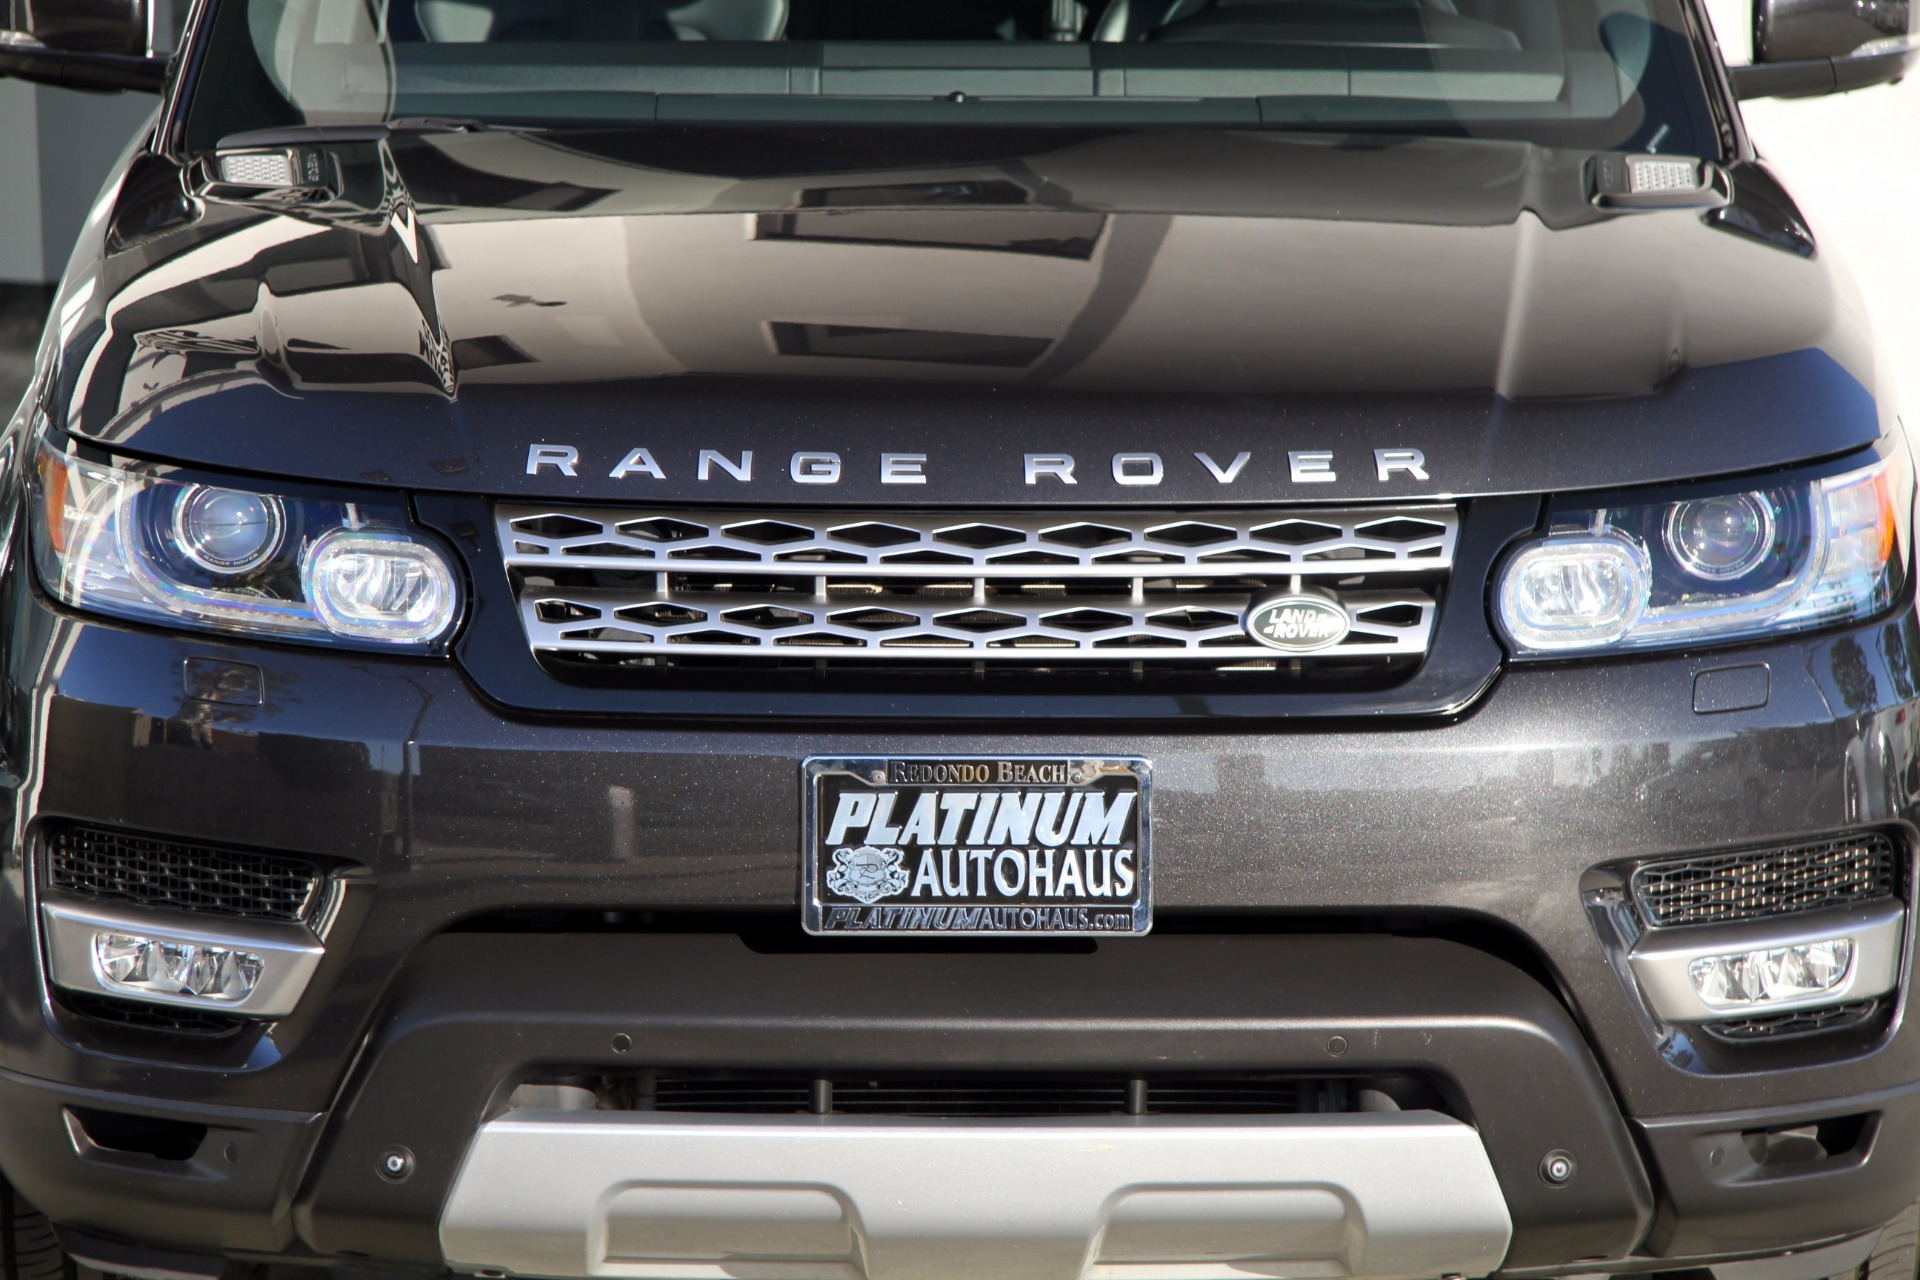 Land Rover For Sale Near Me >> 2014 Land Rover Range Rover Sport HSE Stock # 6059 for ...